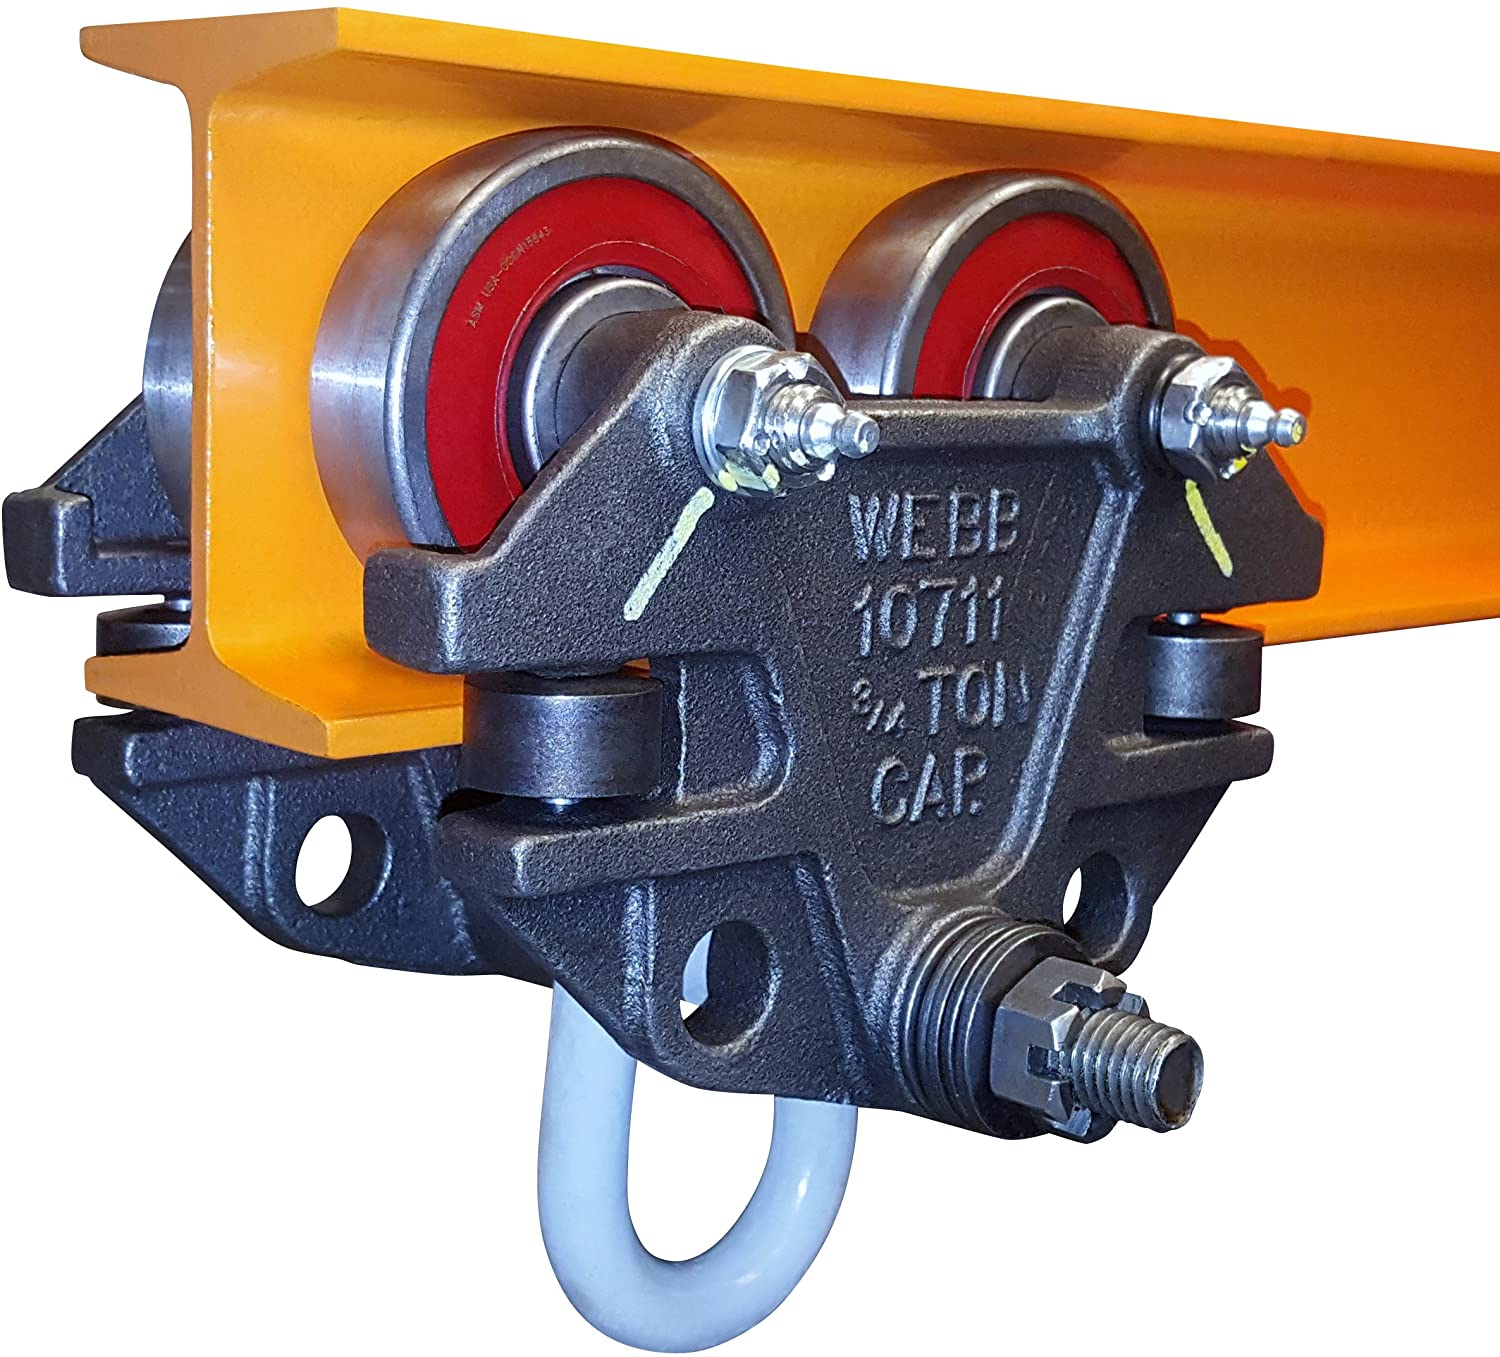 Jervis Webb Beam Trolley With Side Guide Many popular brands Duty Rollers. 3 Heavy Max 70% OFF 4